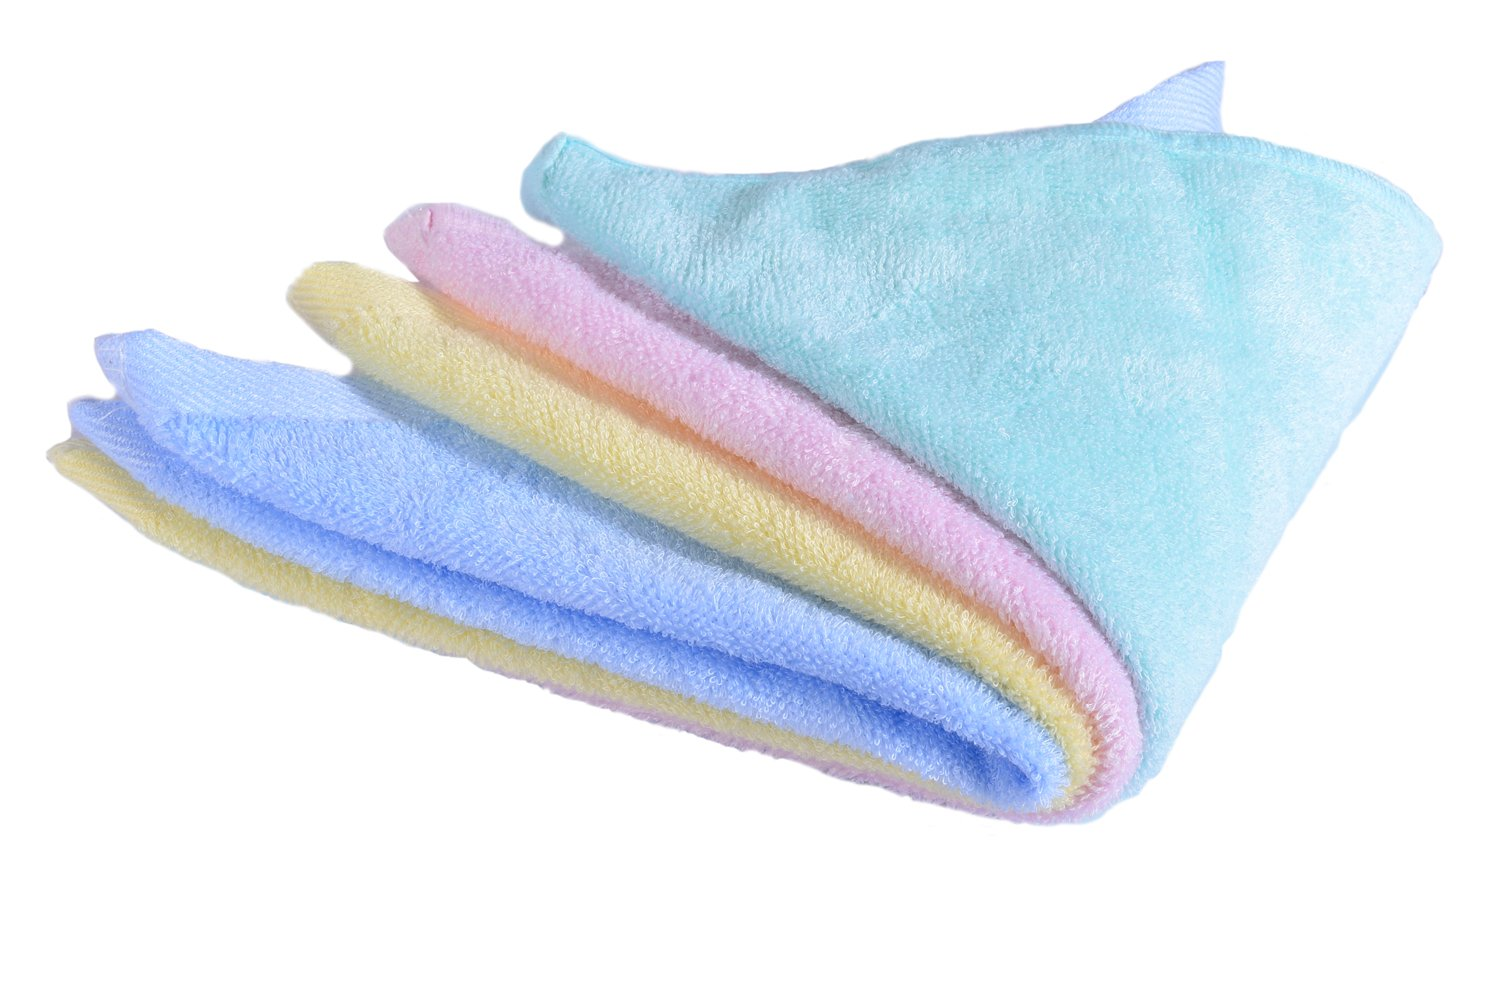 CaLeQi Pack of 4 Mixed Colour-Soft Face Towels, Soft Newborn Baby Face Towel (11.8